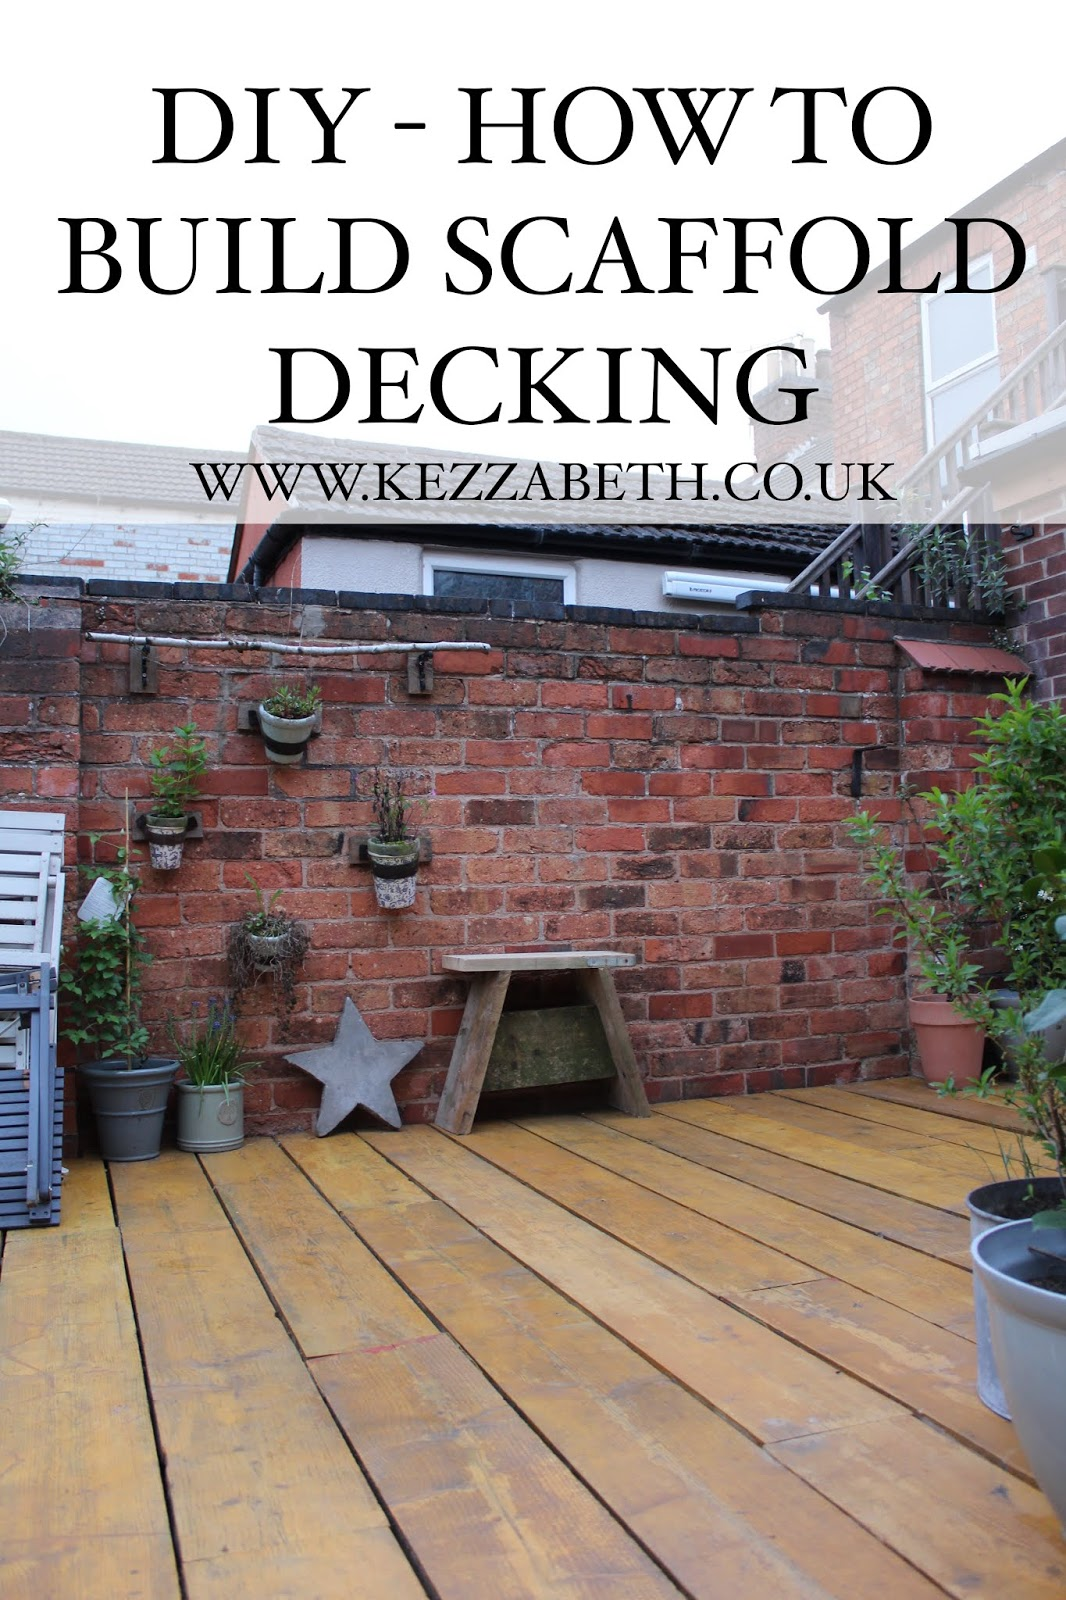 DIY how to build scaffold decking